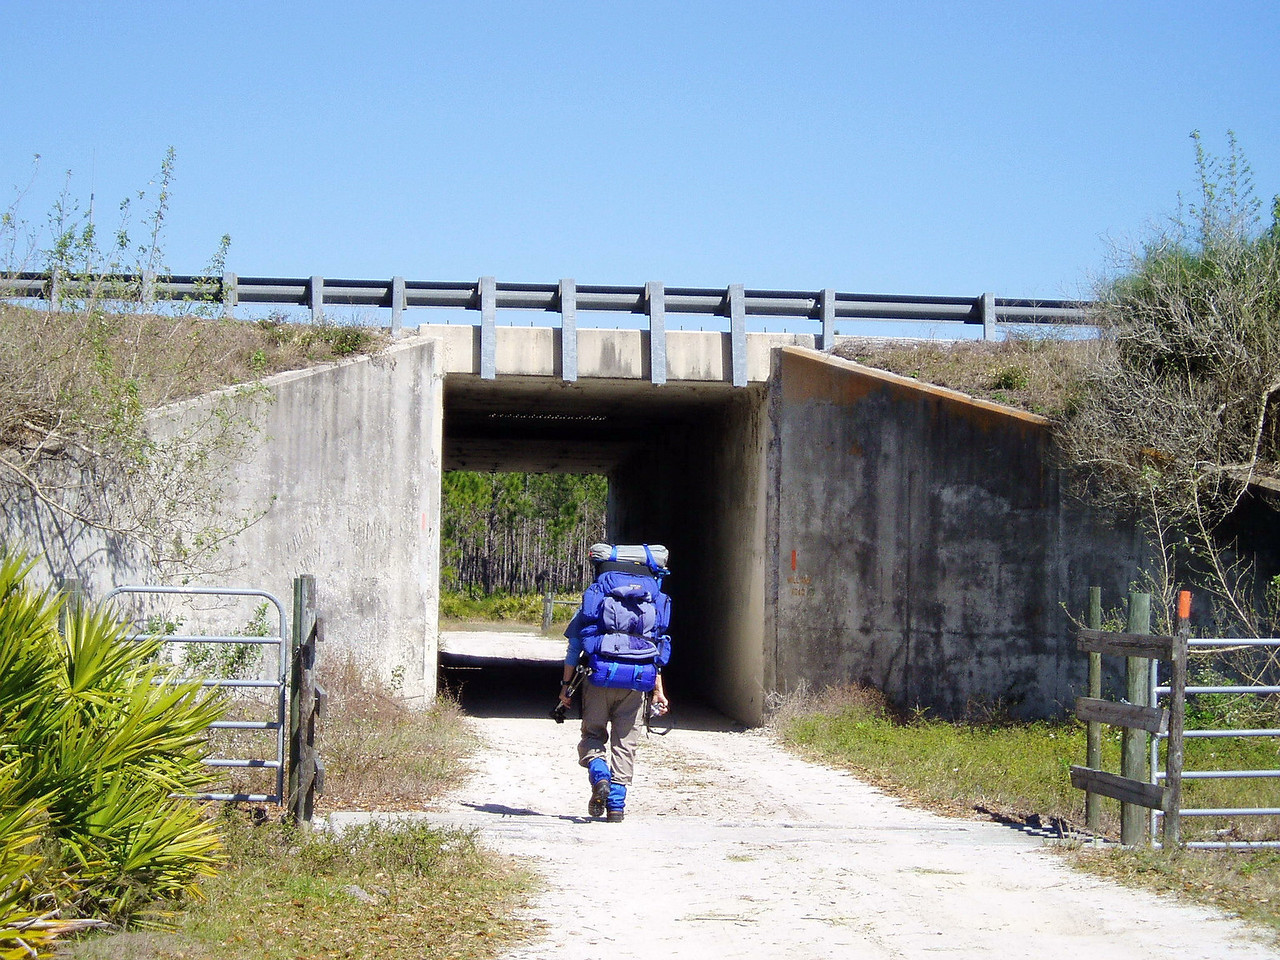 Passing under Florida's Turnpike<br /> location: Three Lakes WMA<br /> photo credit: Deb Blick / Florida Trail Association